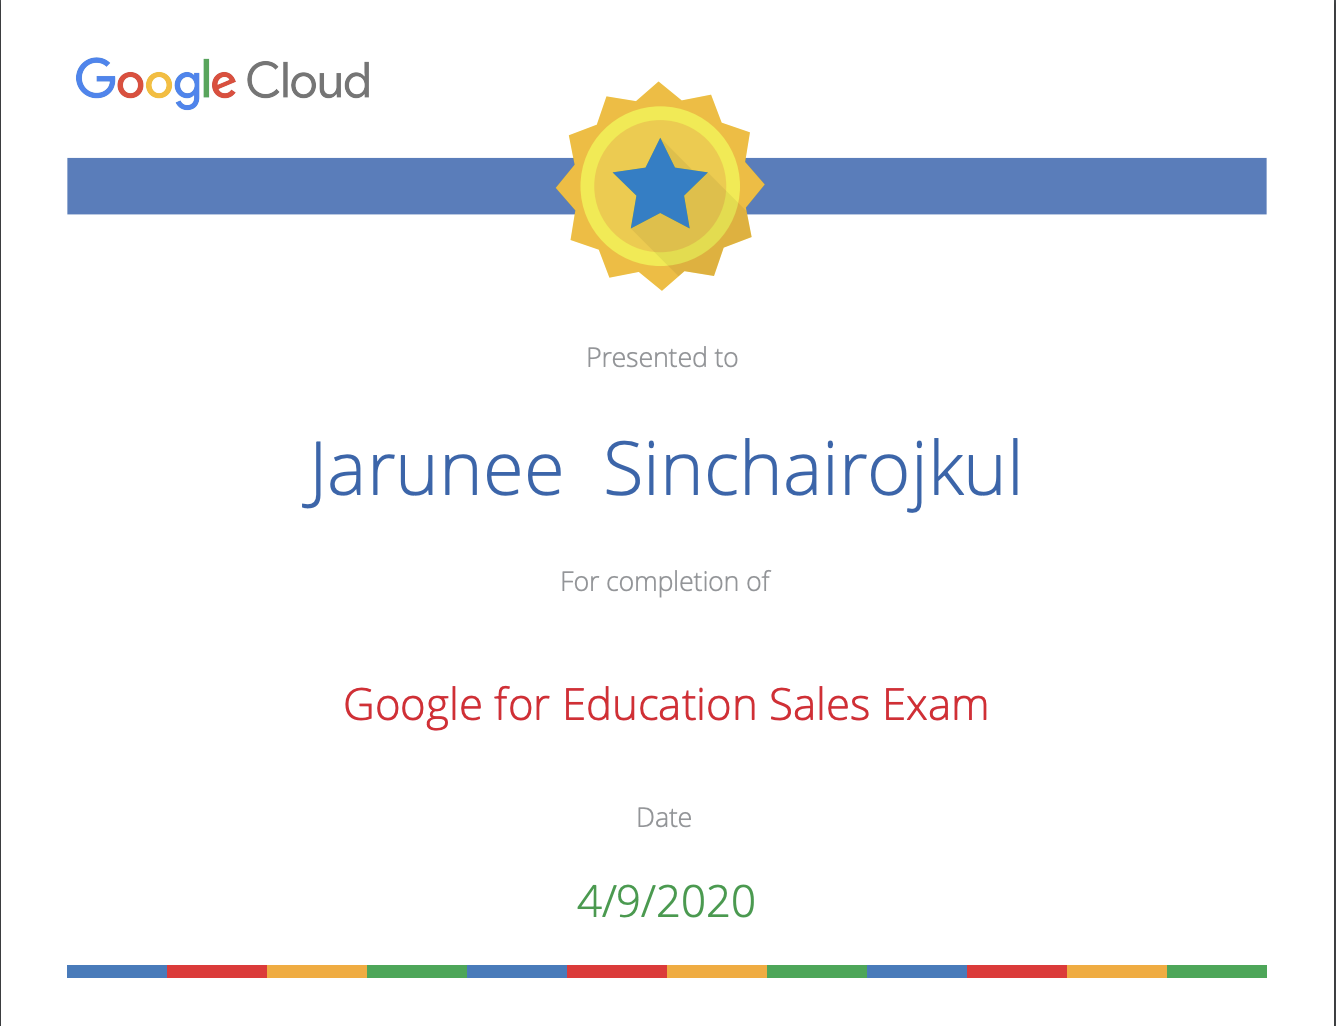 Google for Education Sales Exam